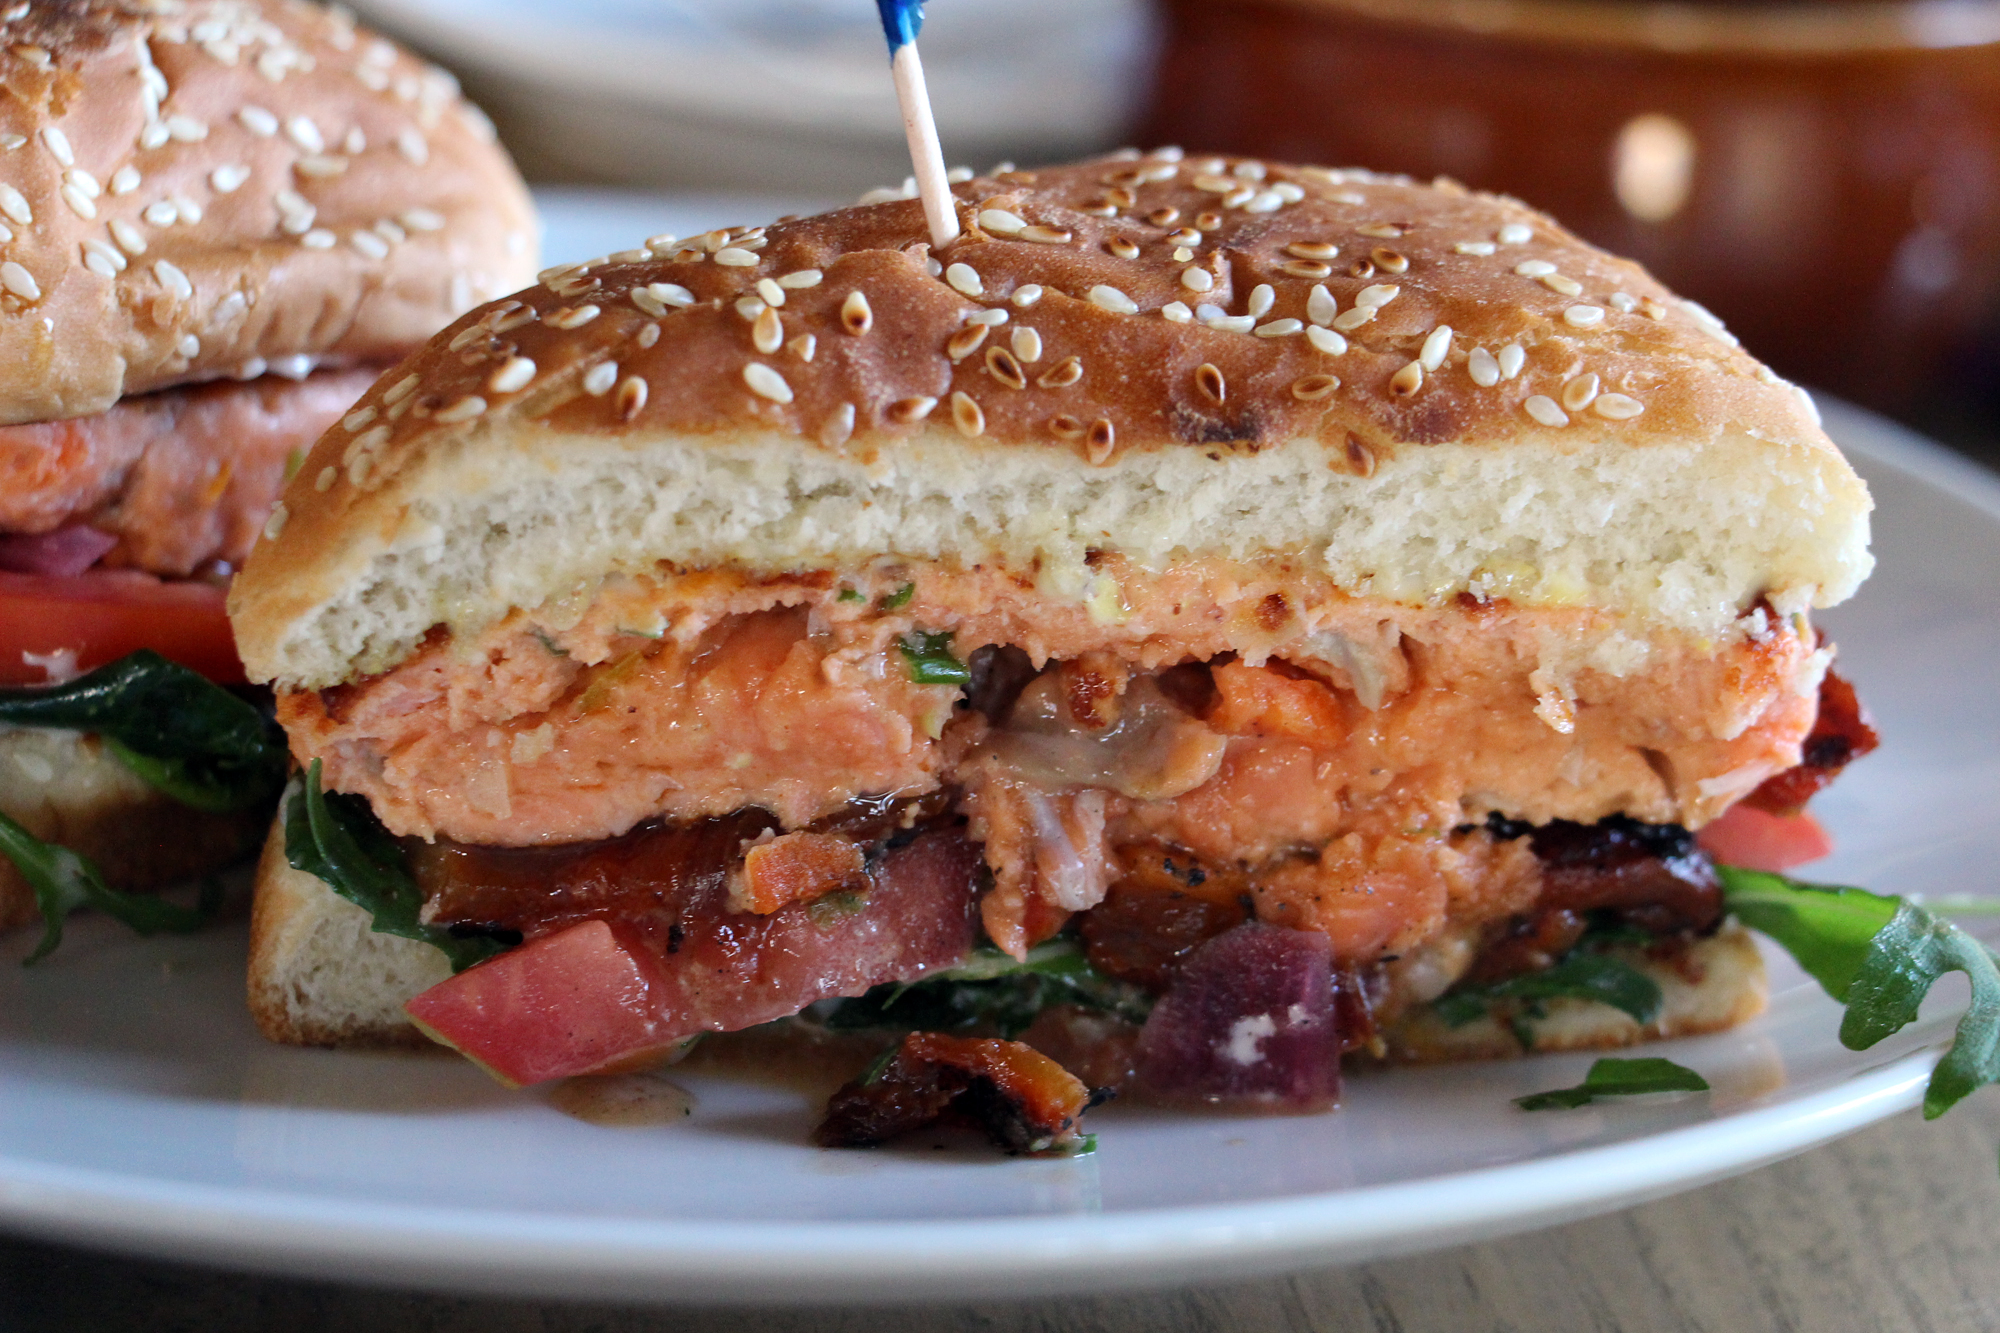 The Saha wild salmon burger.